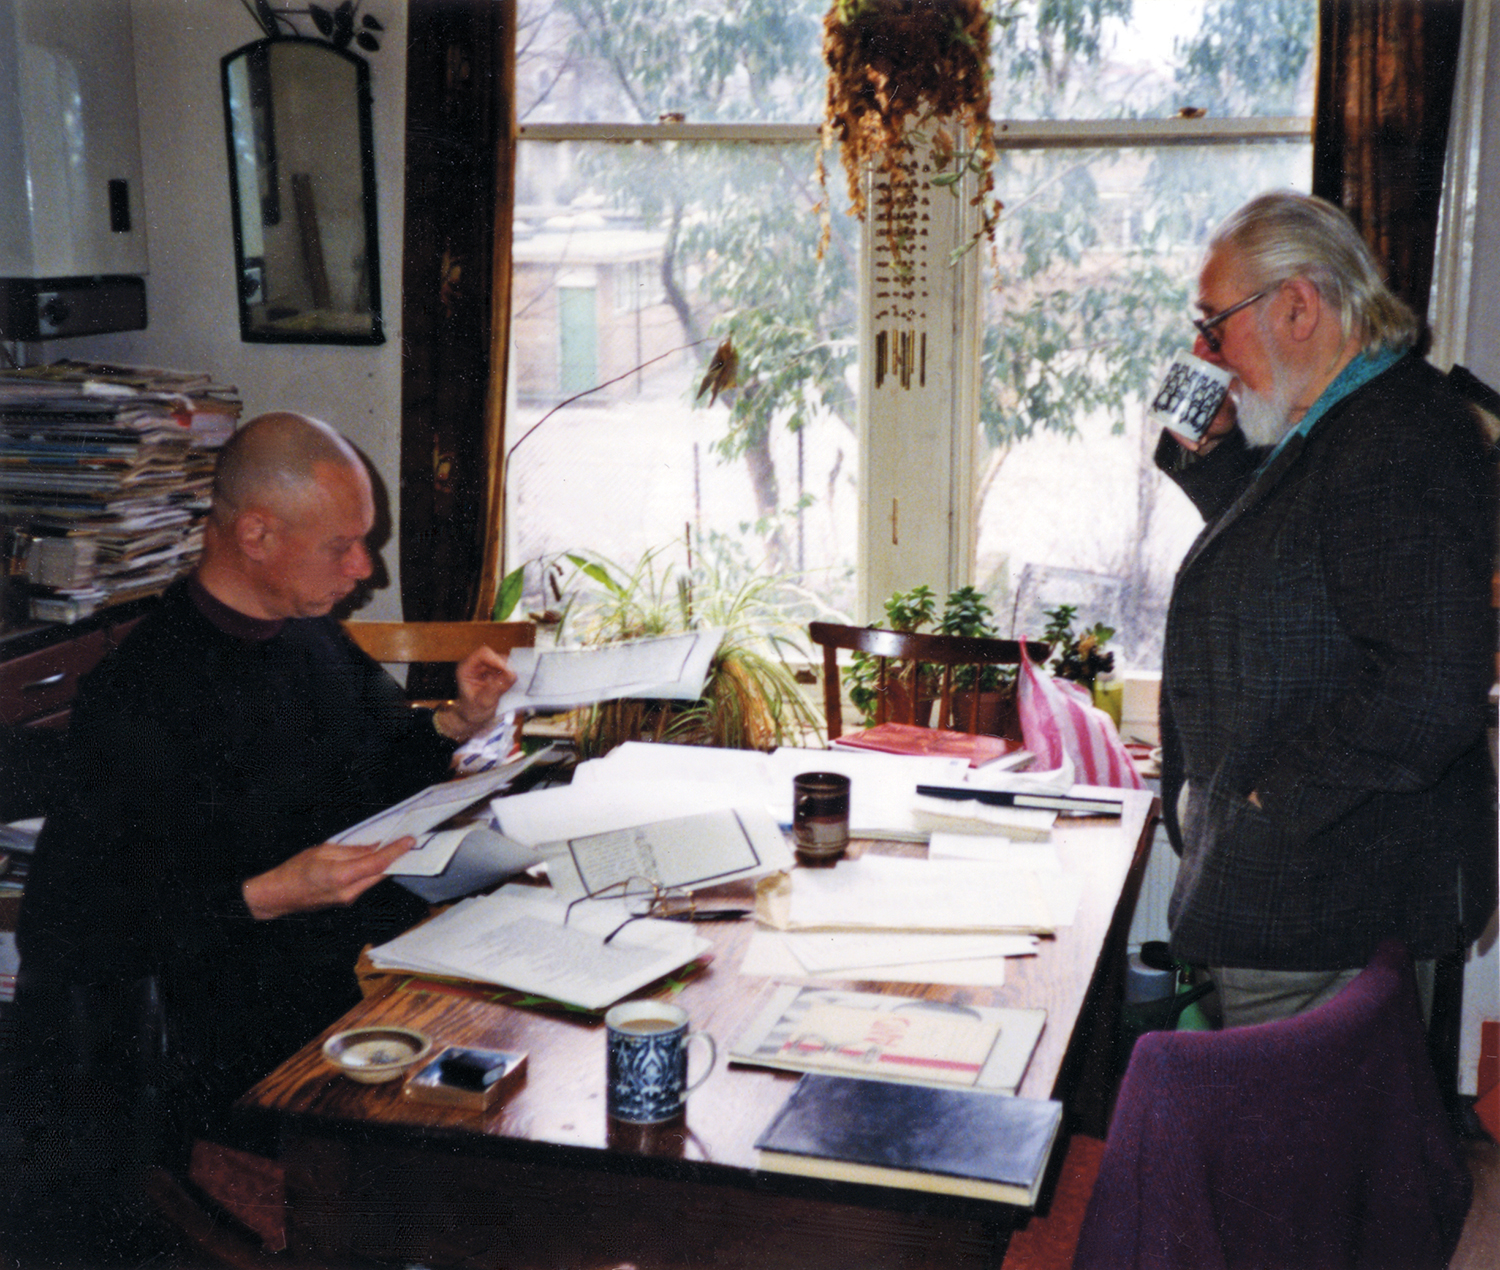 Adrian Clarke and Bob Cobbing in the kitchen of Cobbing and Pike's home at Petherton Road editing AND 9, 1995. Photographer: Jennifer Pike.